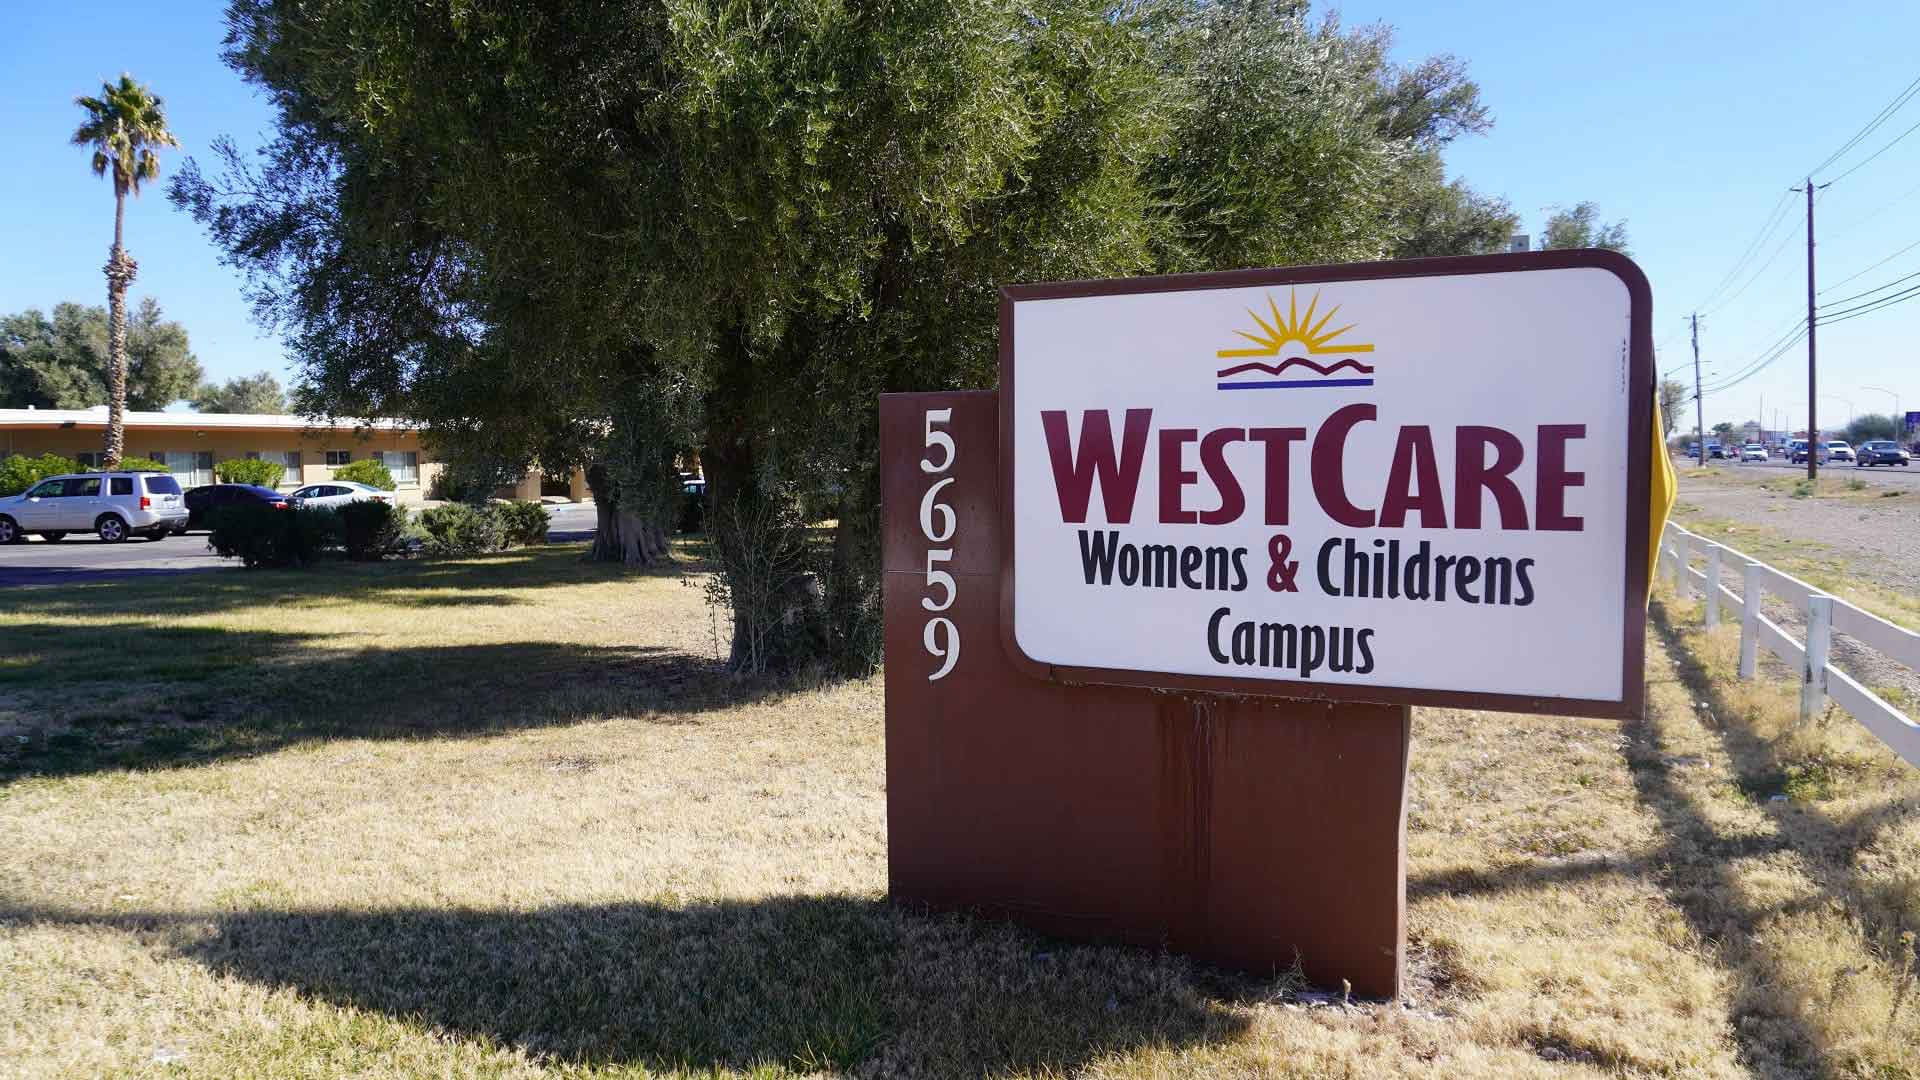 WestCare Women and Children's Campus sign